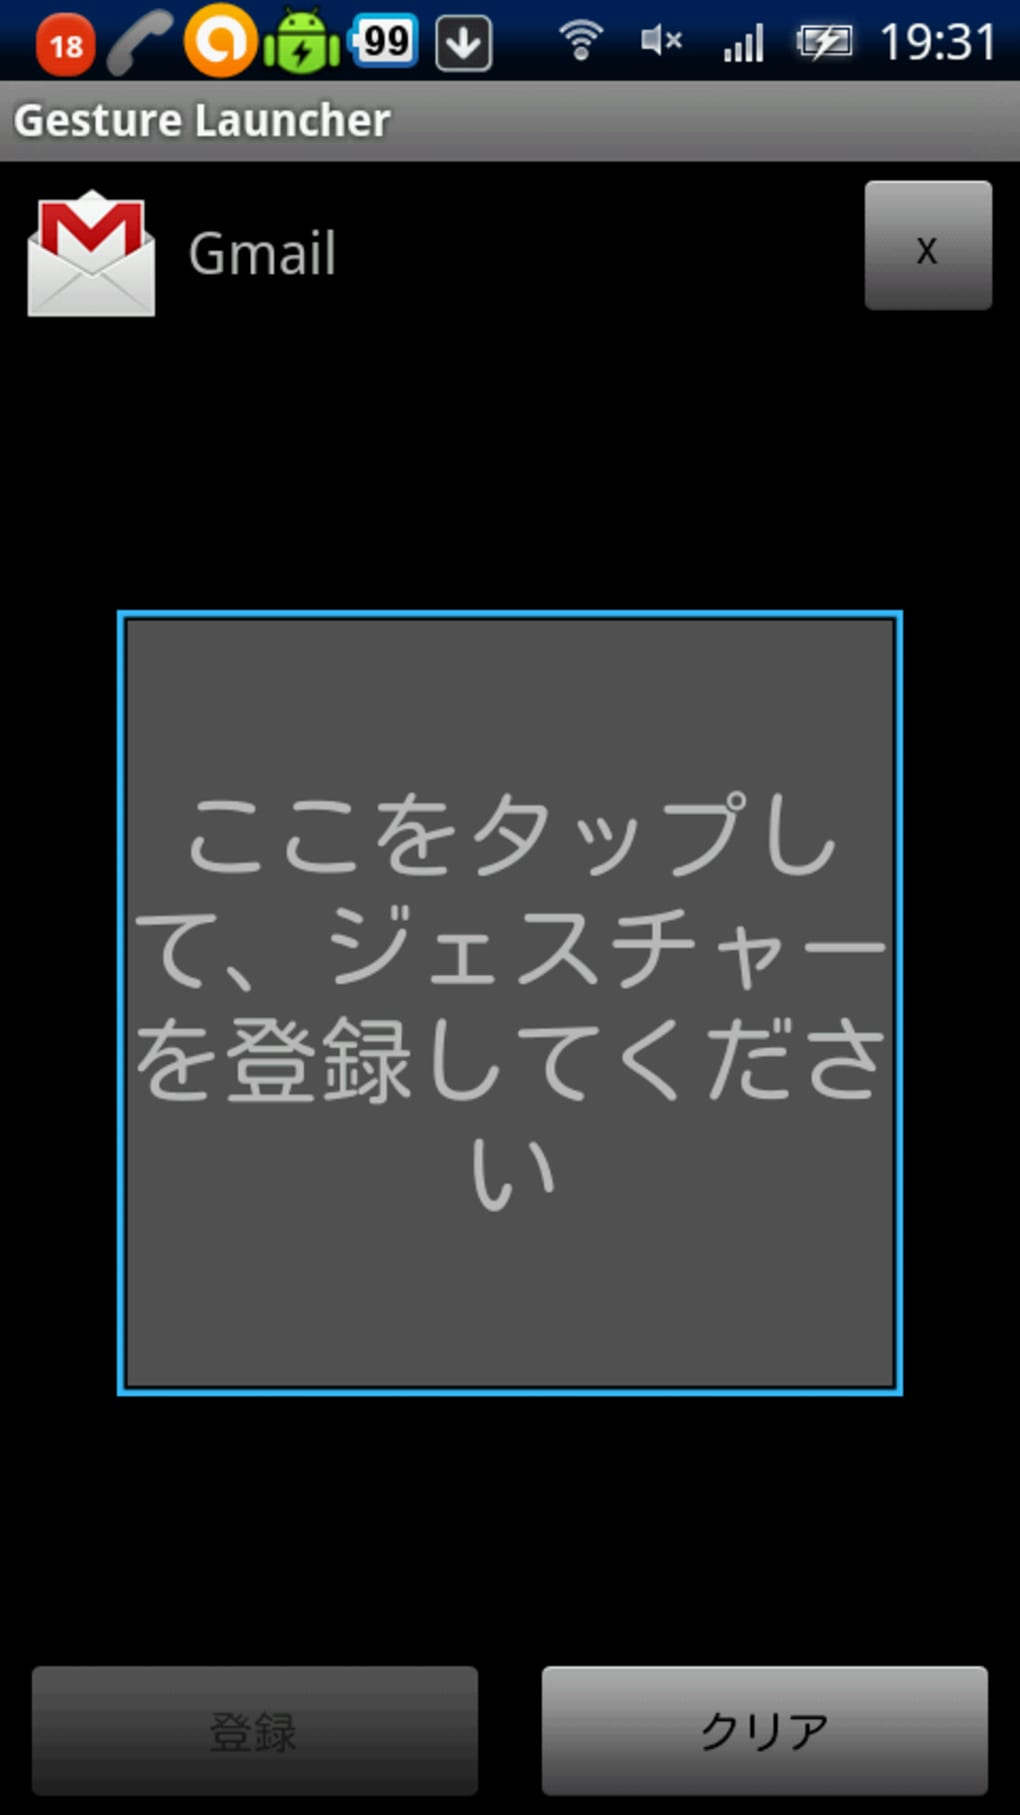 gesture launcher for android ダウンロード